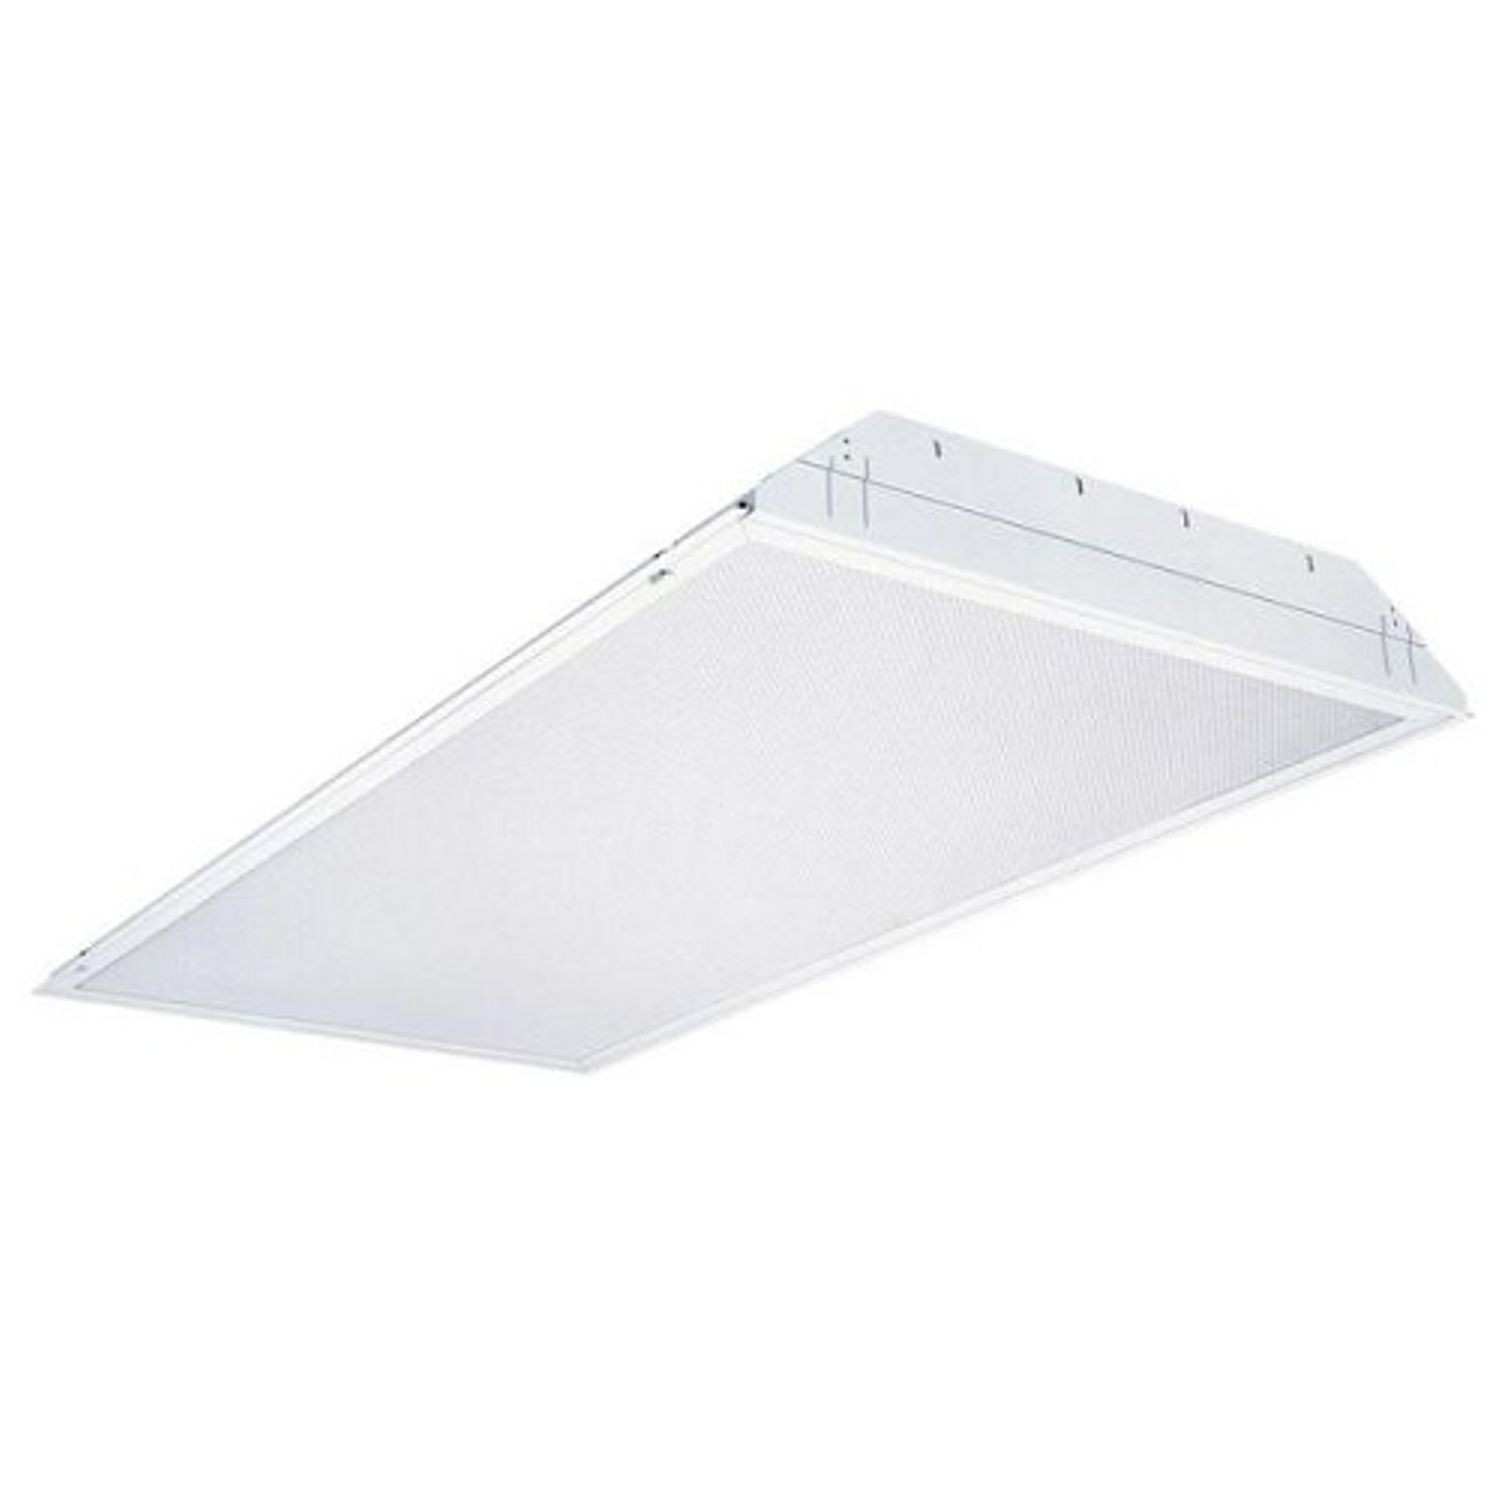 Lithonia Lighting 2gt8 General Purpose Troffer 2 T8 Fluorescent Lamp 120 277 Vac Steel Housing Lay In Fits 2x4 Grid